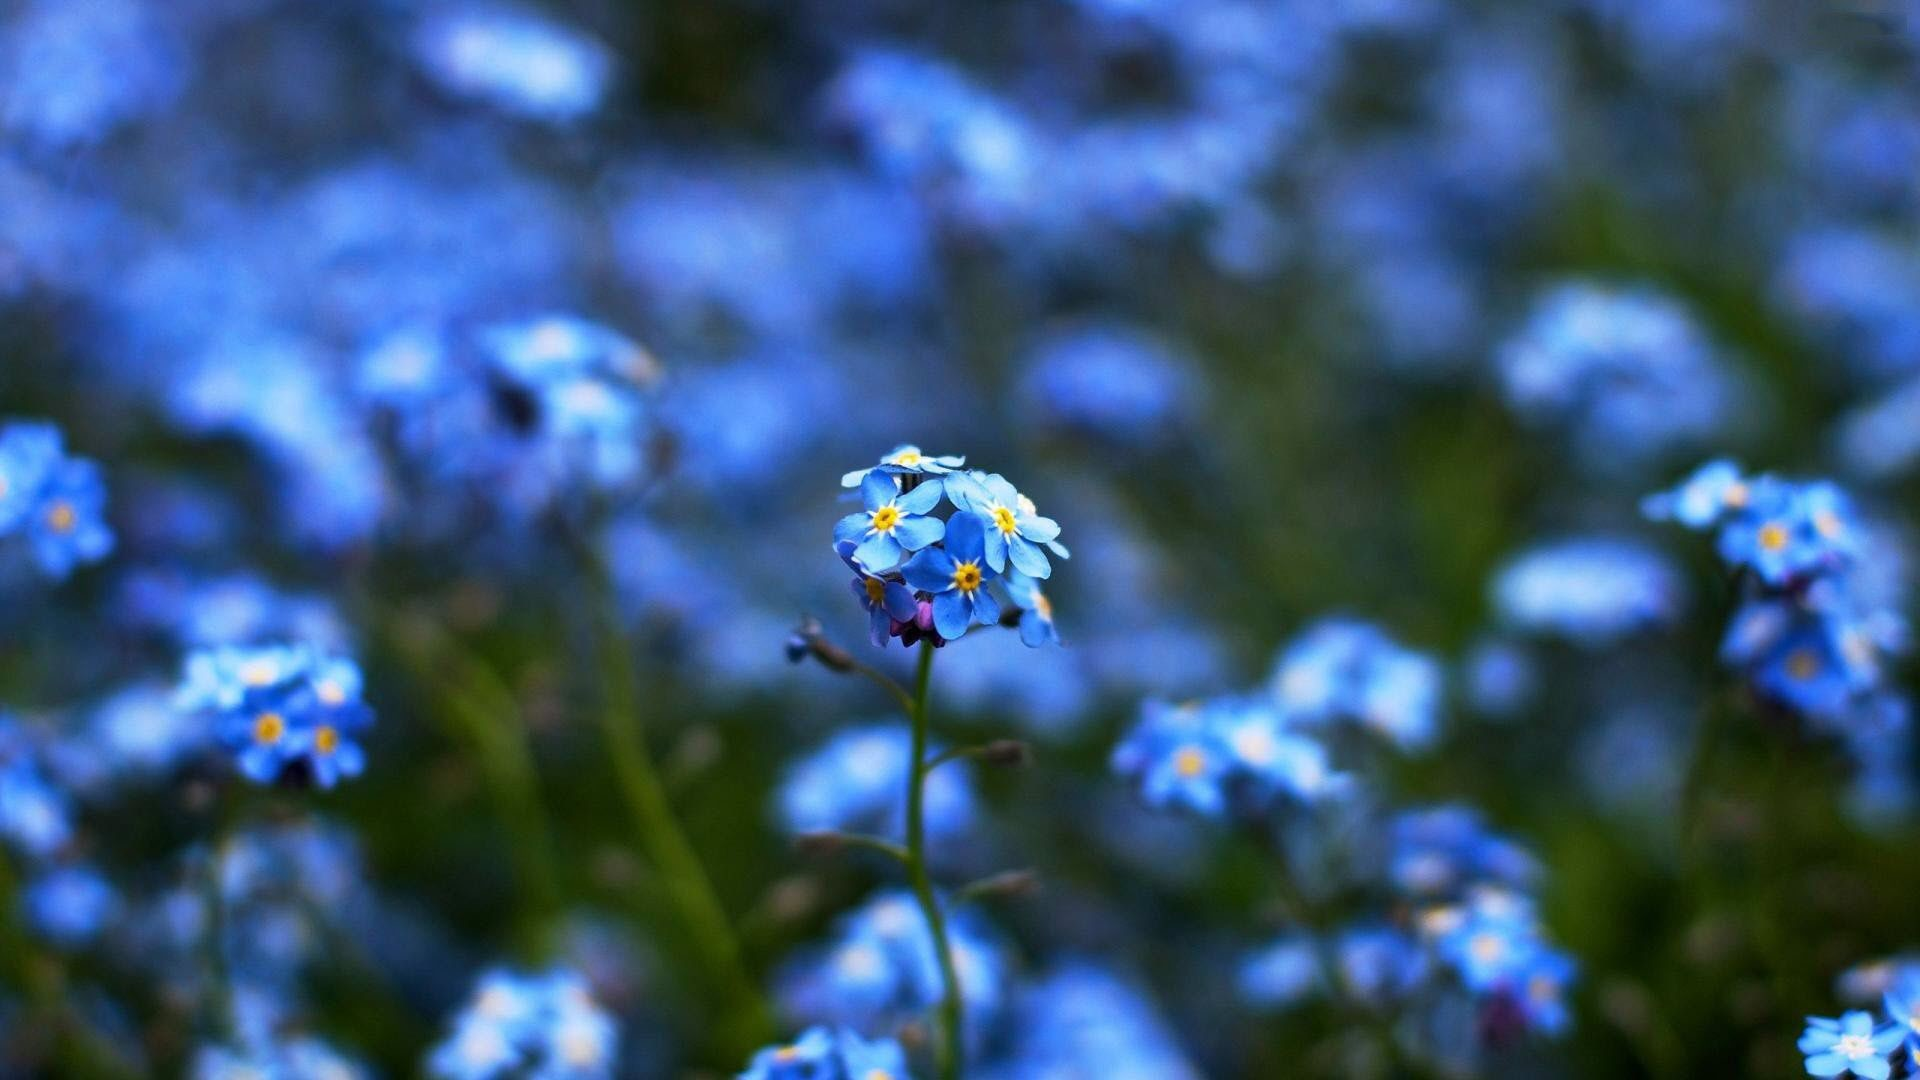 Res: 1920x1080, Blue Flowers Wallpaper | HD Flowers Wallpaper Free Download ...